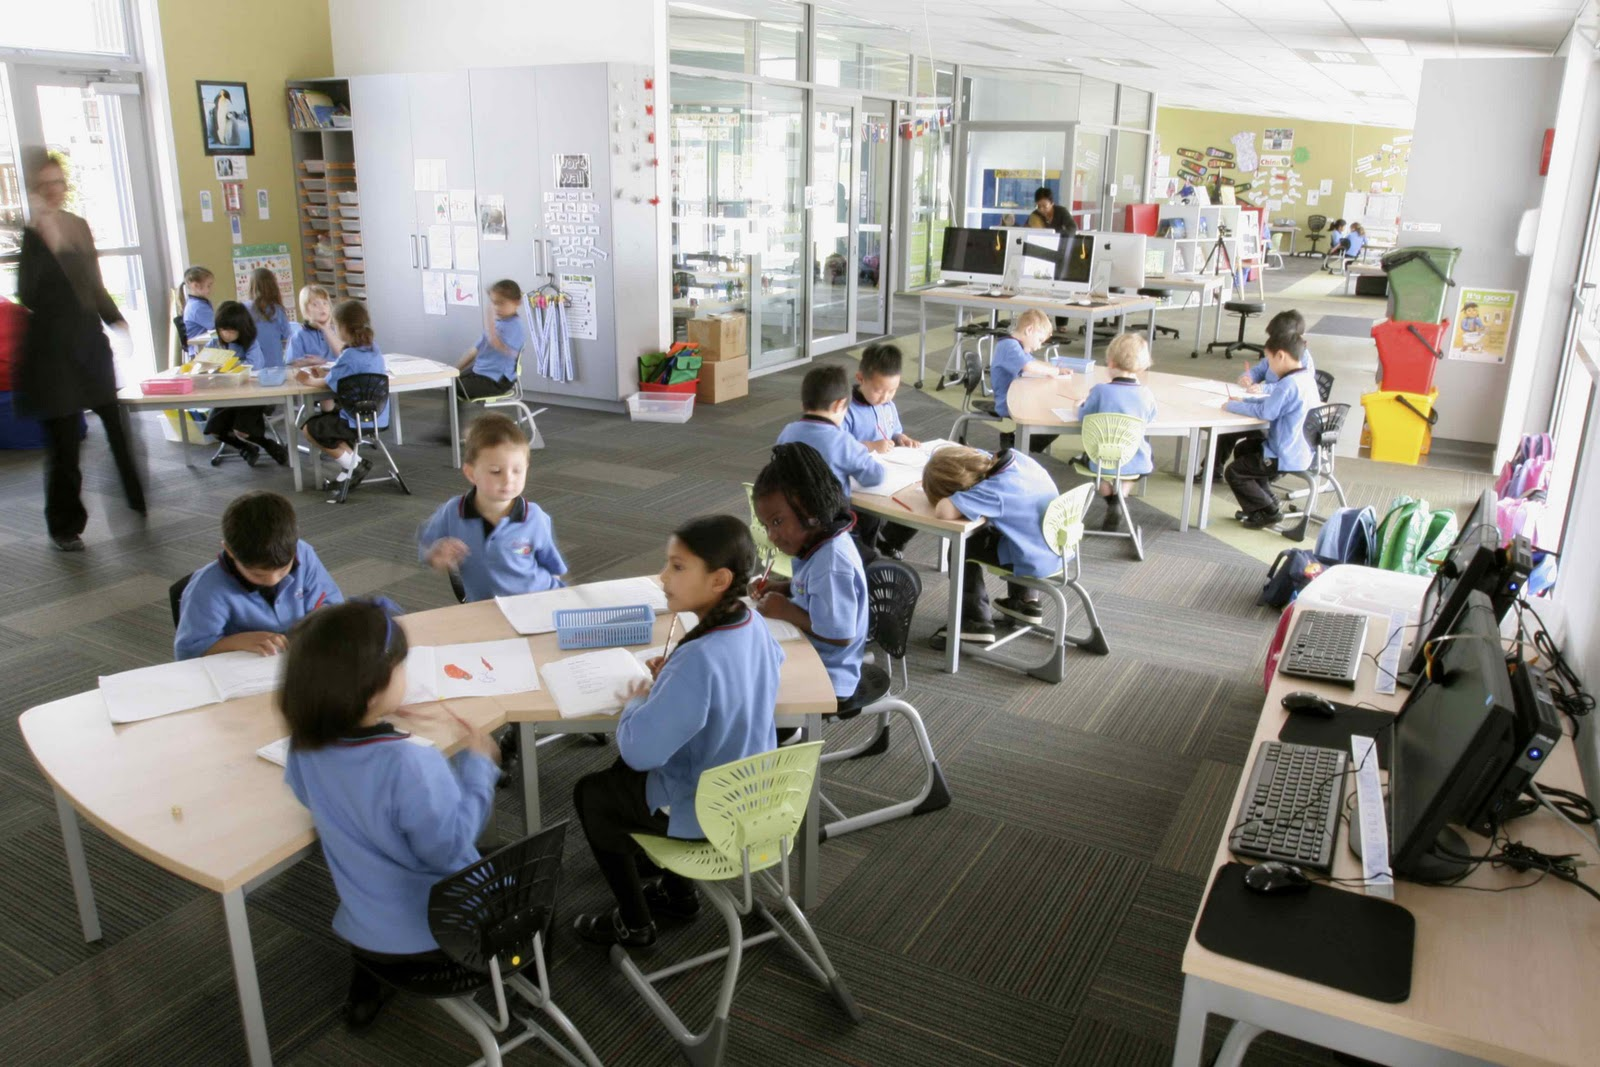 Classroom Design Collaborative Learning ~ Open learning spaces collaborative teaching what might